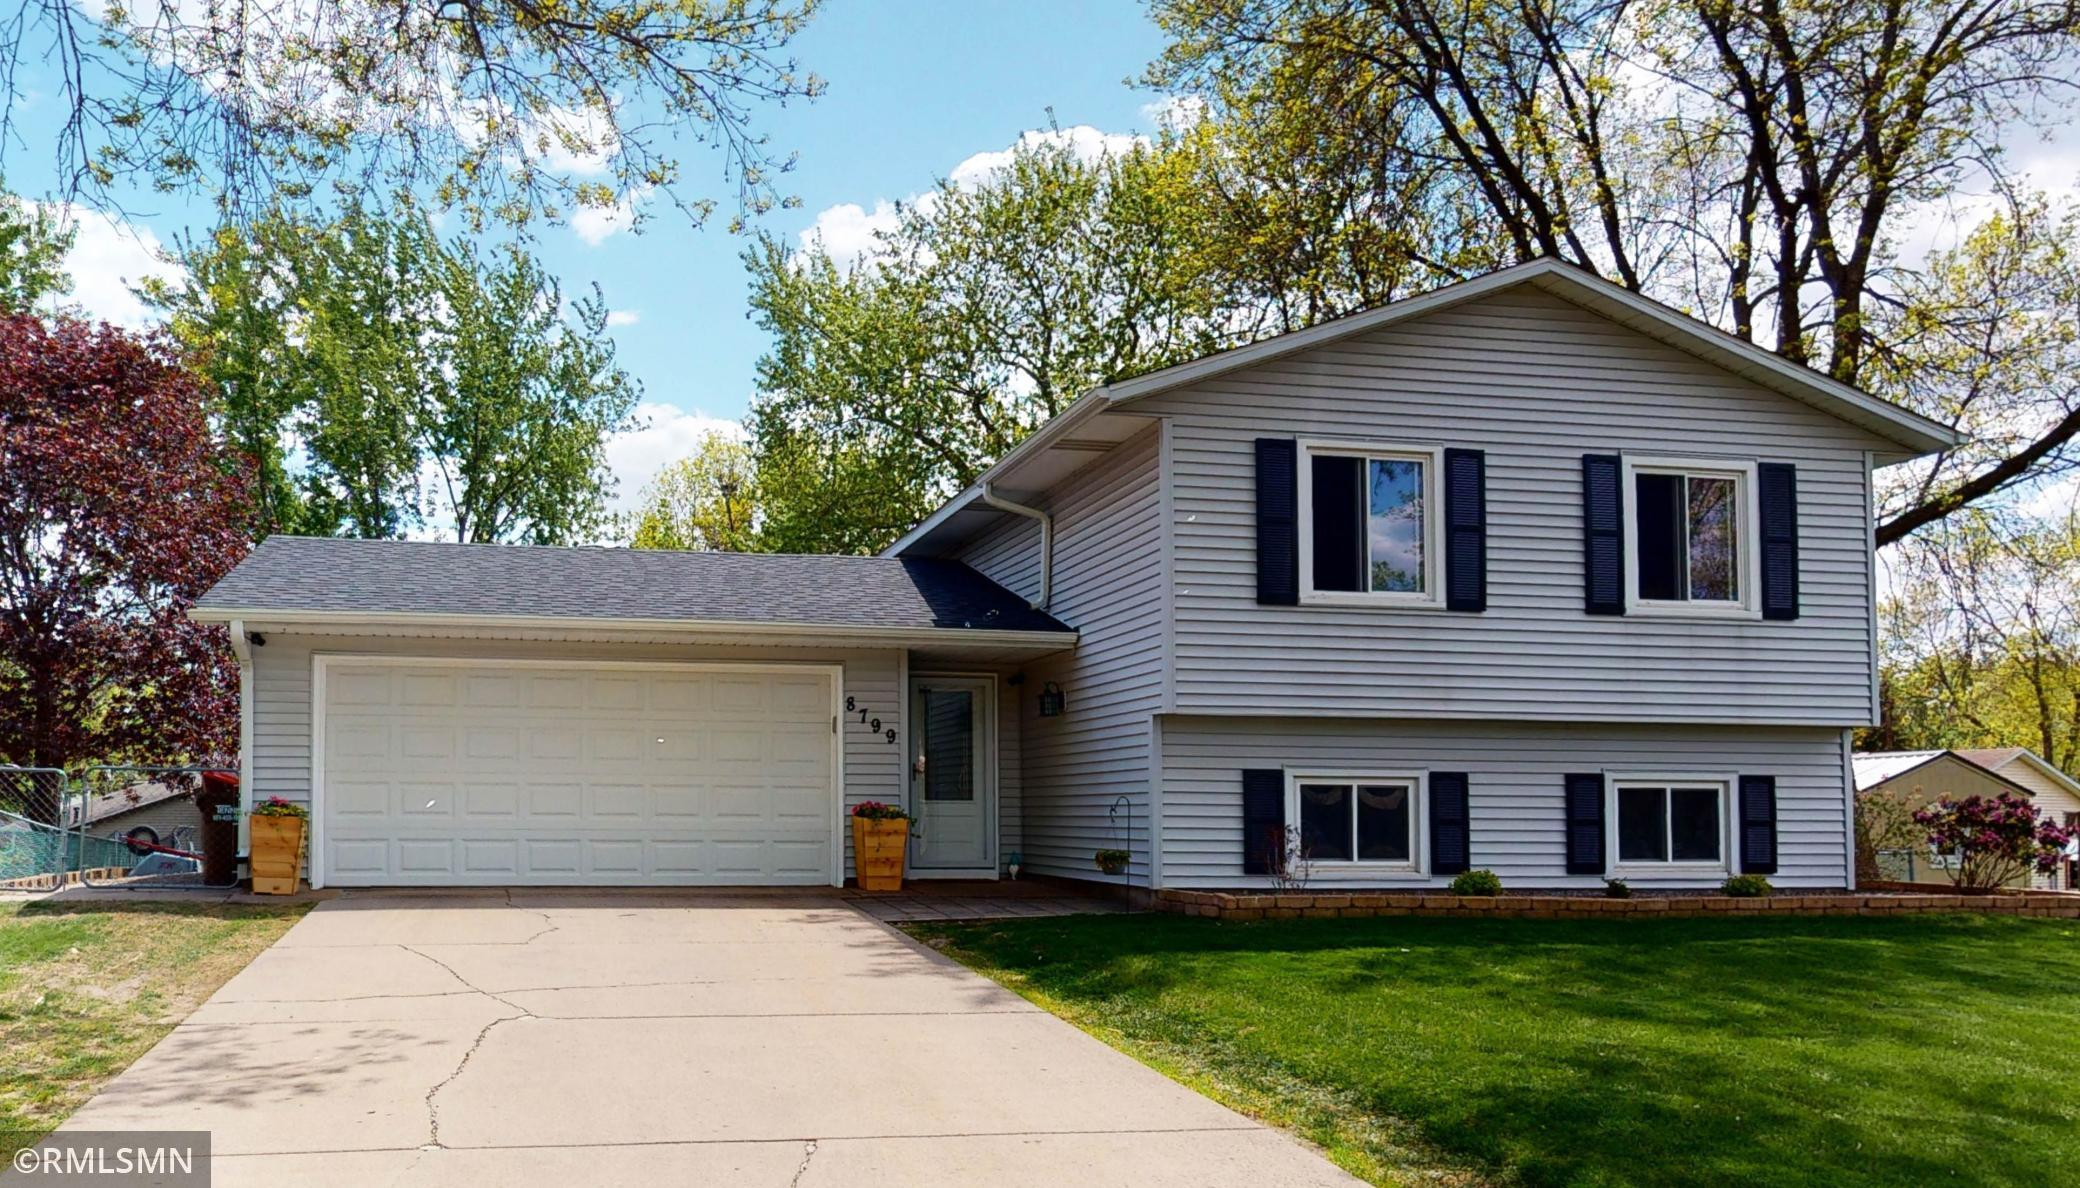 8799 Indian Boulevard S, Cottage Grove MN 55016 - Photo 1